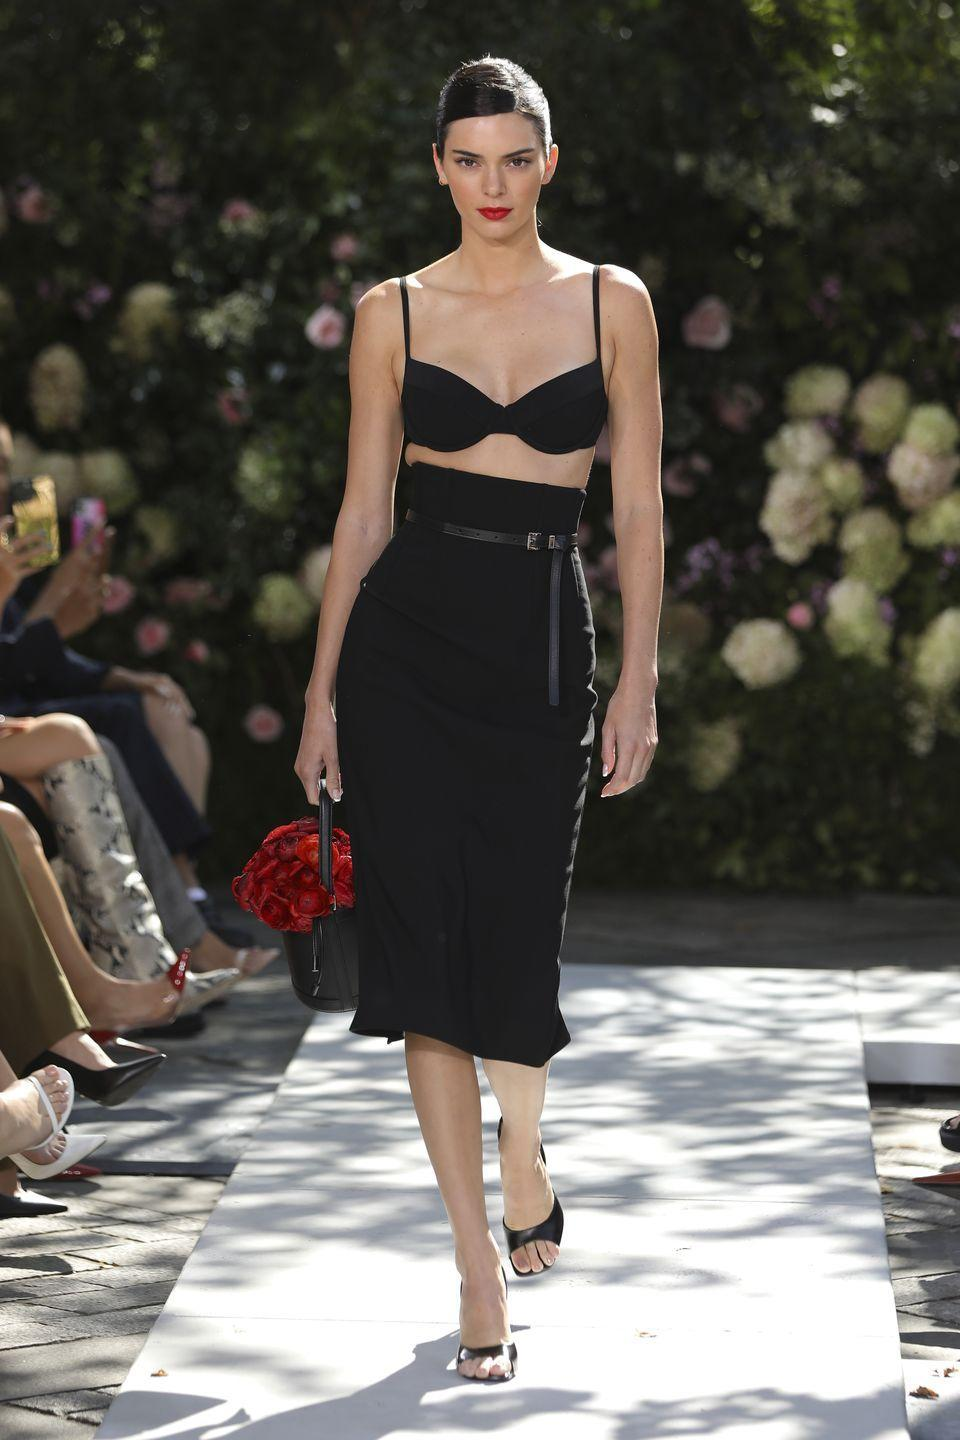 """<p>The theme for Michael Kors' SS22 collection was """"urban romance"""", where the designer essentially wrote a love letter to New York City and a celebration of the """"rebirth"""" of fashion with the return of a real-life catwalk show.</p><p>""""I think we're all ready to focus on the simple, powerful pleasures of love — romantic love, love for one another, love for the places that sustain us, which in my case is New York City,"""" he said. """"It's a special thrill to celebrate the resilience and rebirth of the city and the fashion industry with a live runway show. This collection pays<br>homage to everything I love about spring in the city — the energy, the mix of people, the romance and laid-back glamour.""""</p>"""